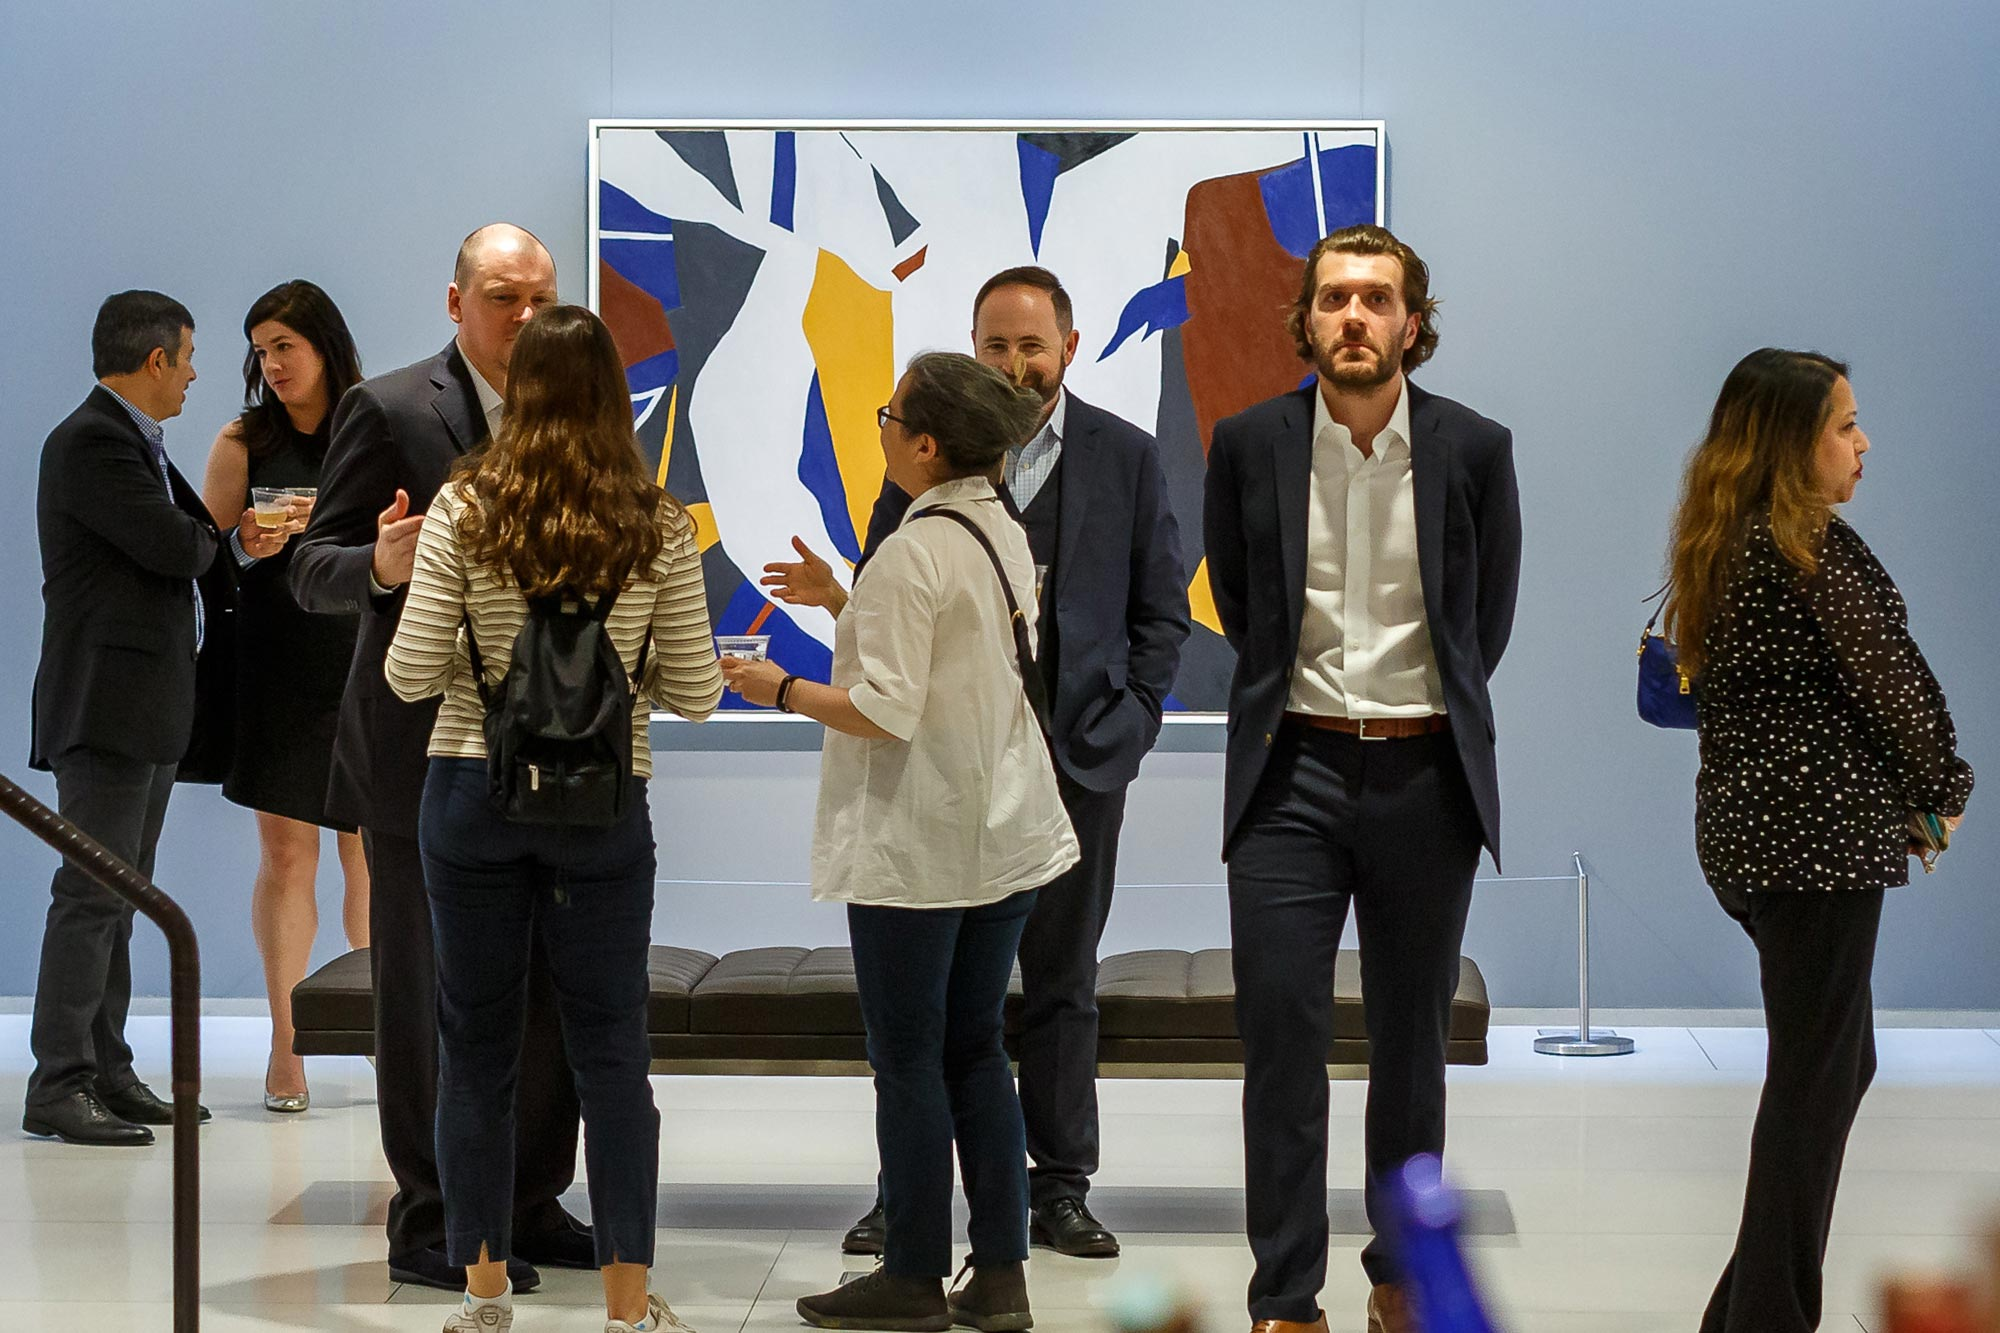 Seamus McKillop stands in a crowd of people at an opening reception of Ralston Crawford's work at the Vilcek Foundation.